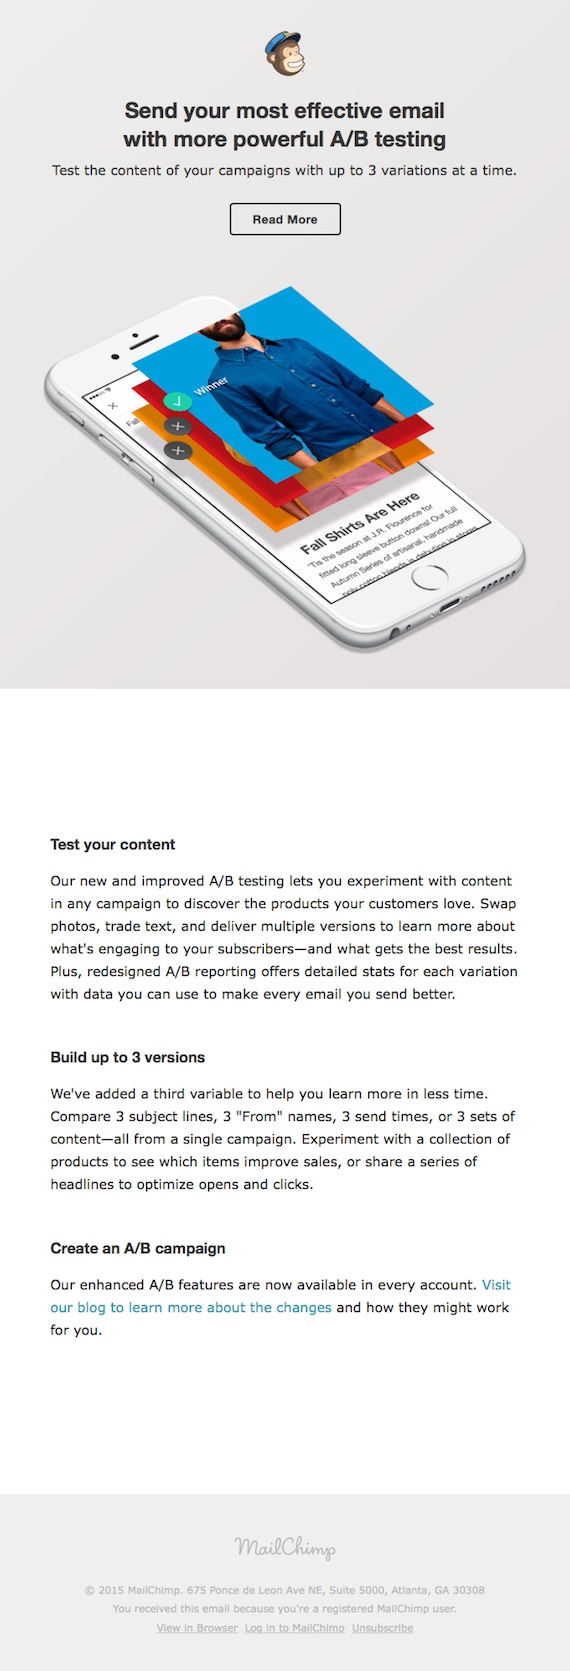 mailchimp-email-resized